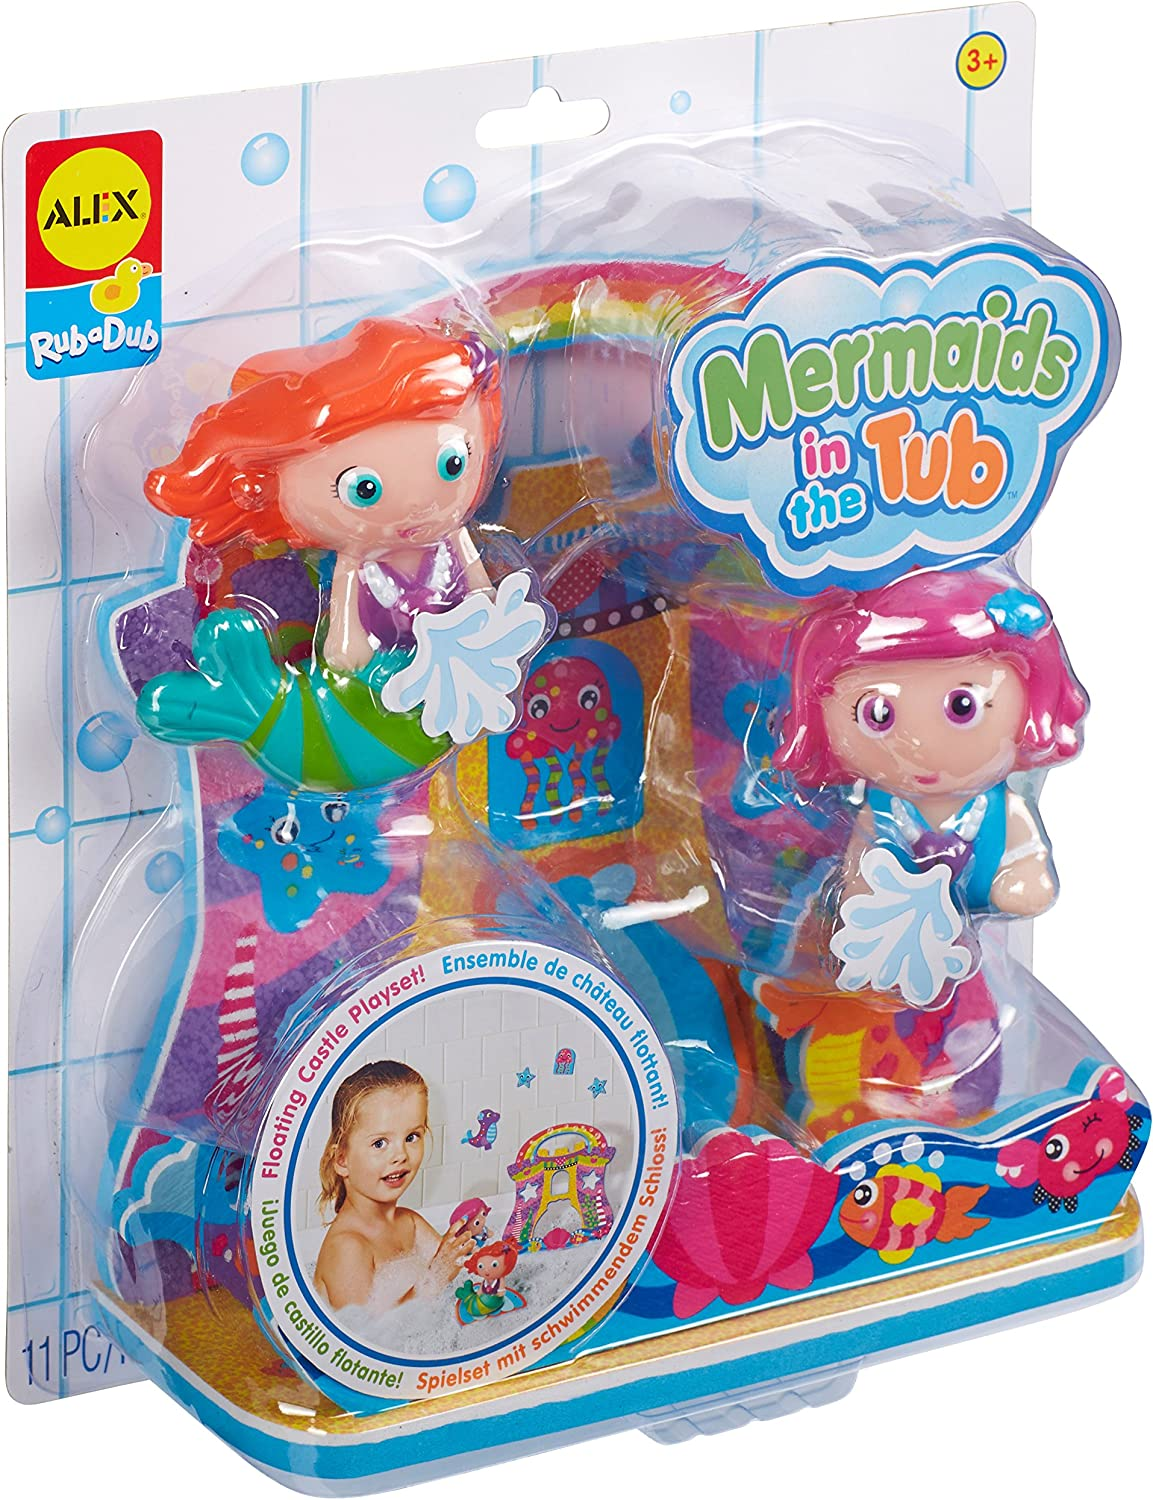 50+ Best Gift Ideas & Toys for 4 Year Old Girls (2020 Updated) 44